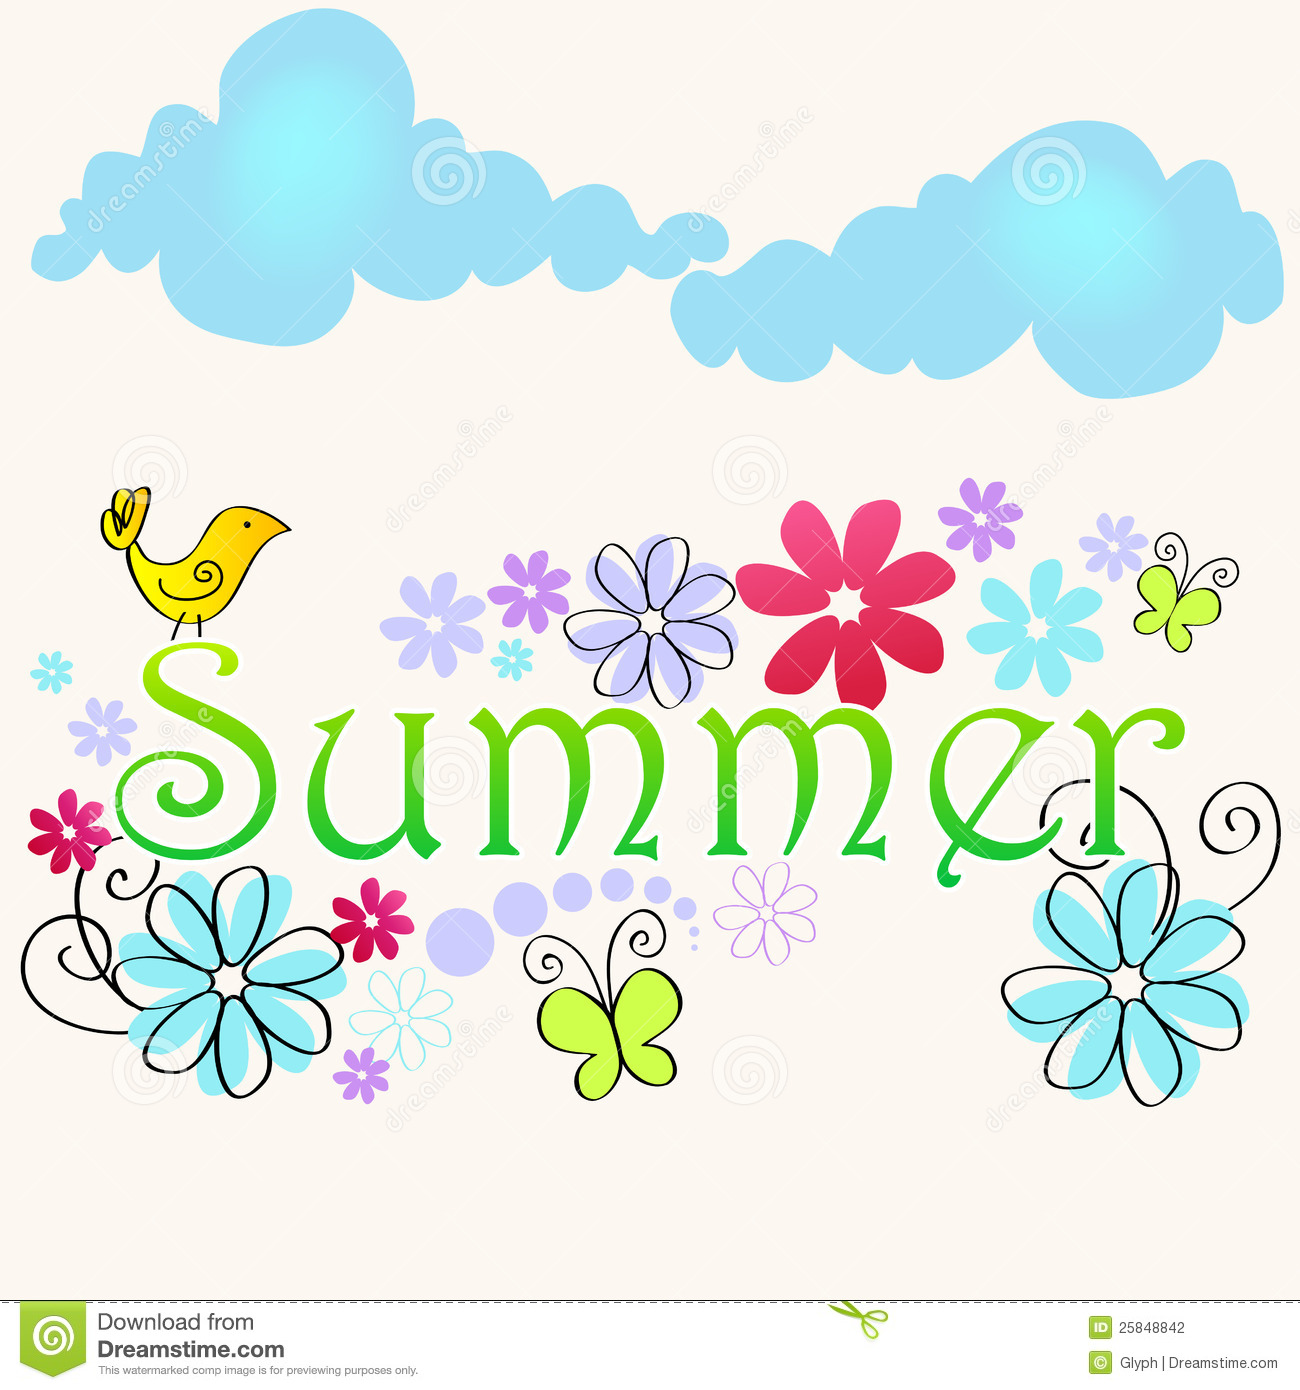 Iphone 5 Wallpaper Floral Cute Summer Text Illustration With Bird Stock Vector